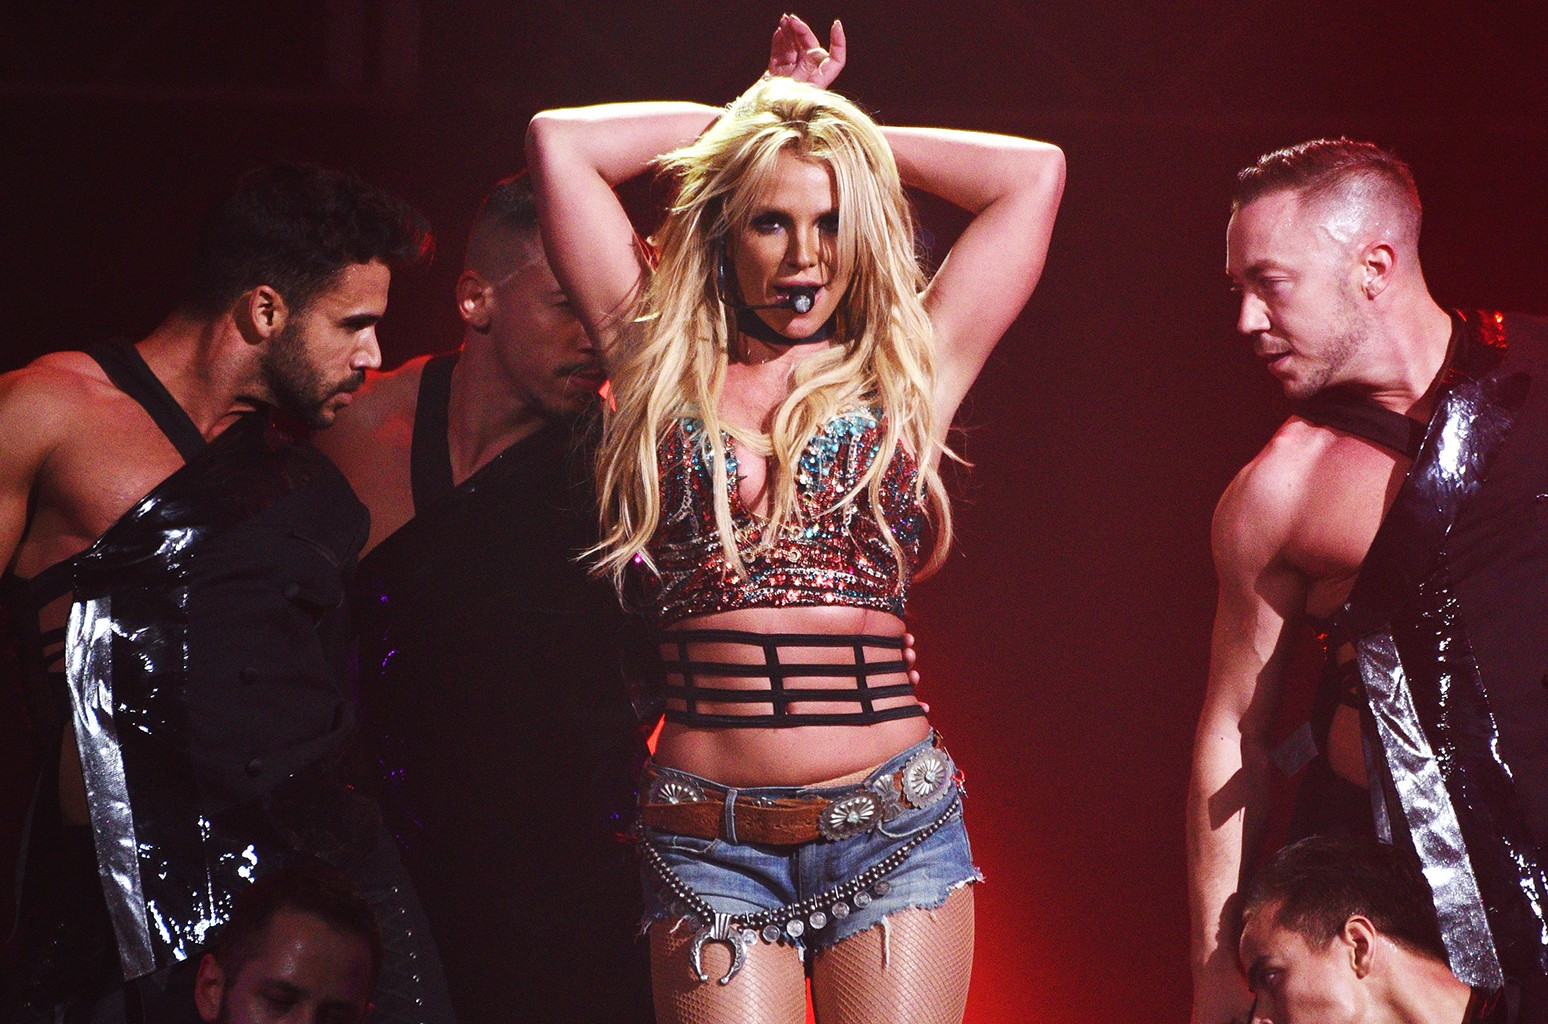 Britney Spears performs during the Now! 99.7 Triple Ho Show 7.0 at SAP Center on Dec. 3, 2016 in San Jose, Calif.